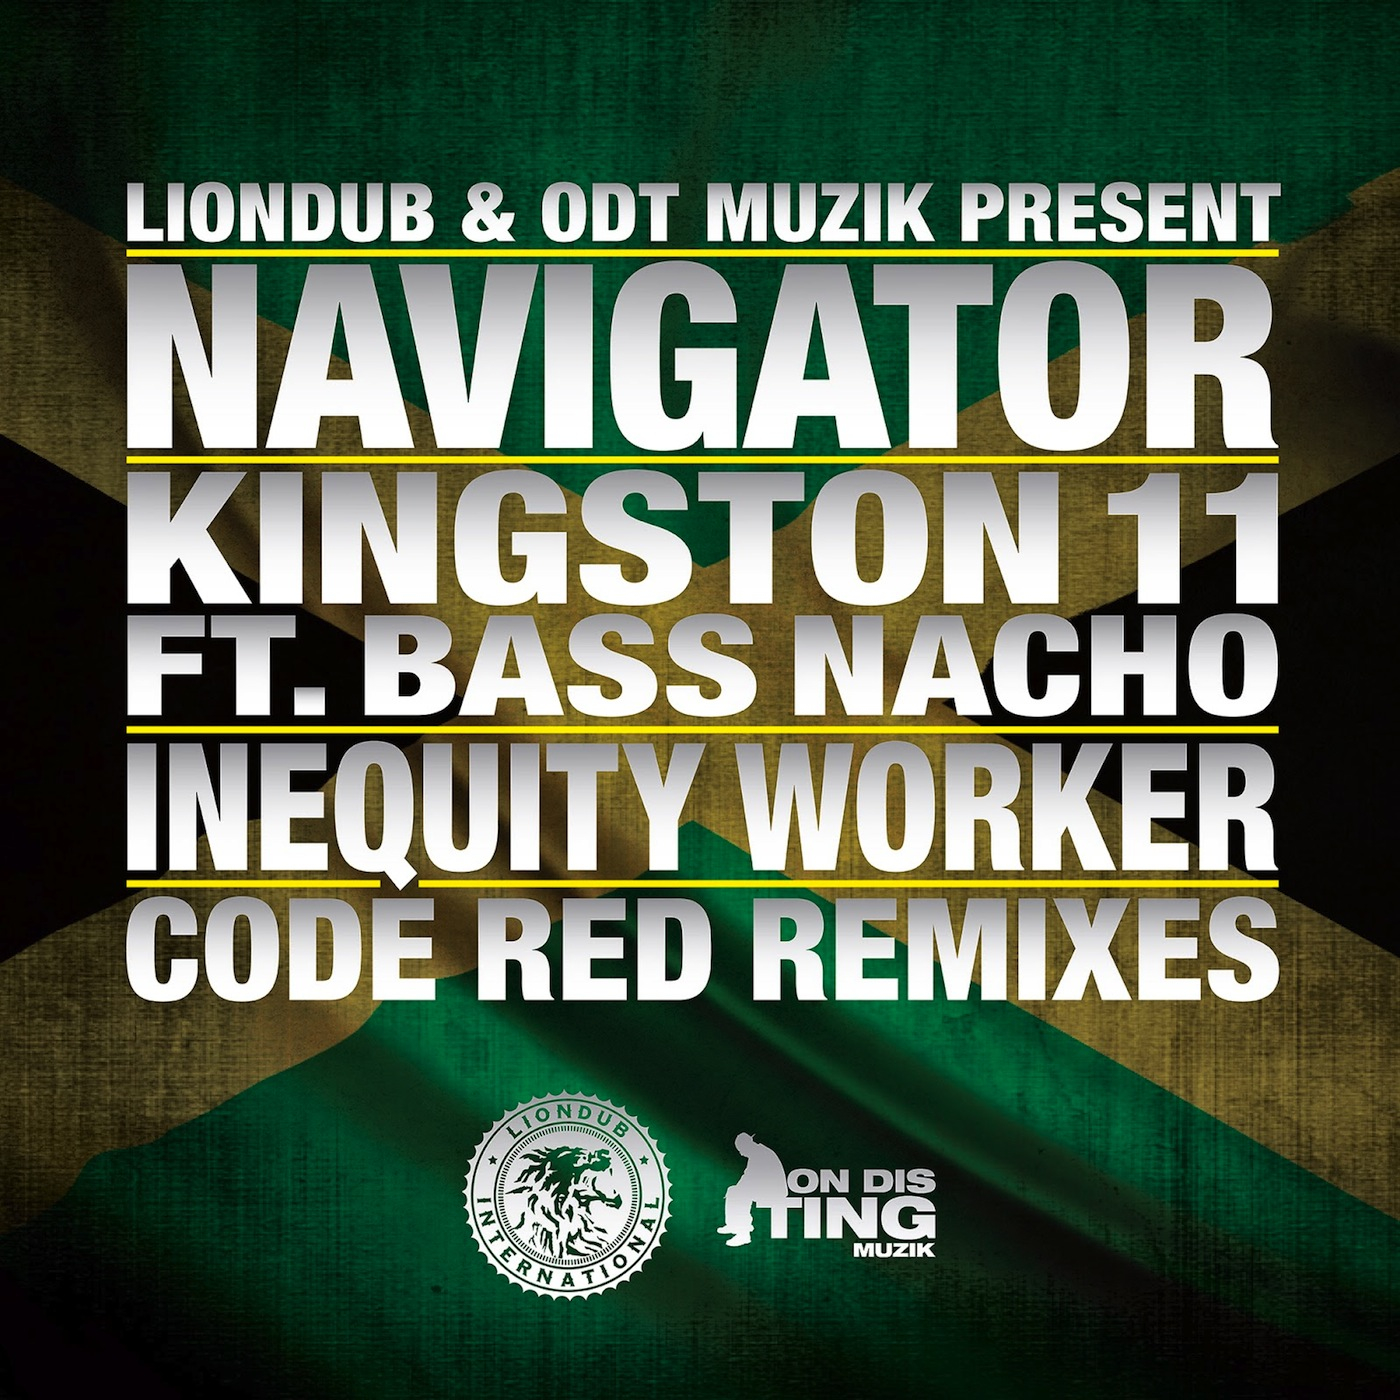 Navigator/KINGSTON 11 (CODE RED RMX) 12""